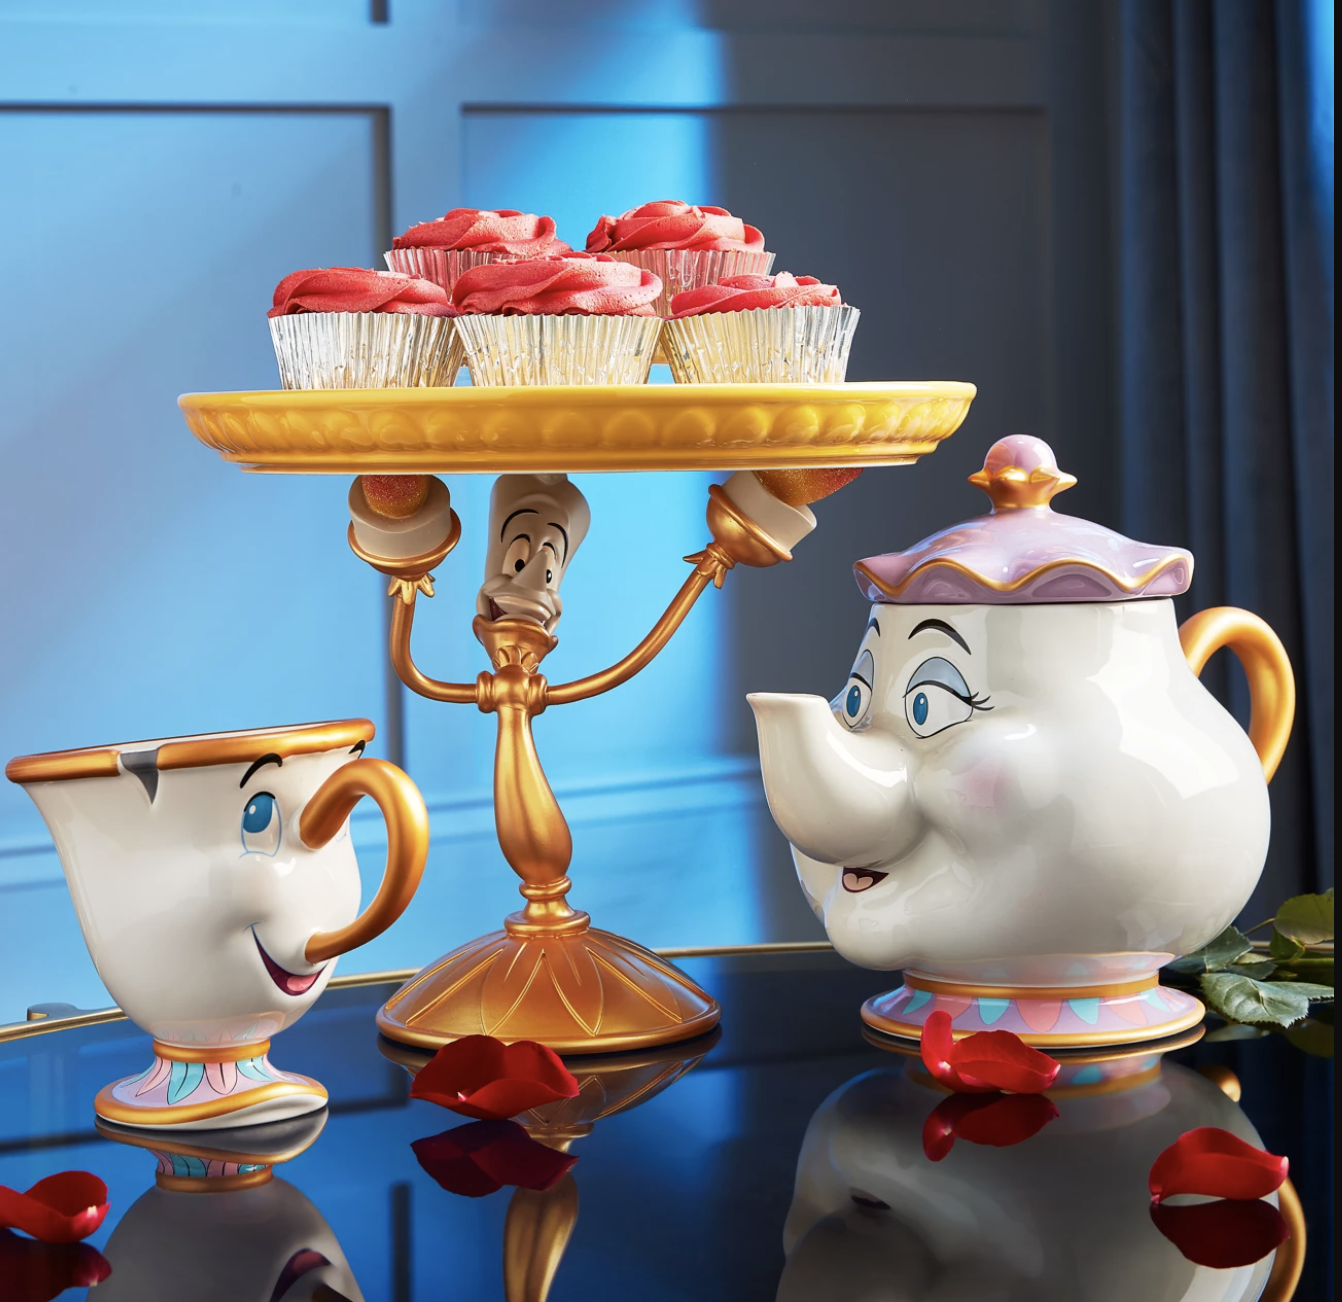 the cake stand with other kitchen accessories